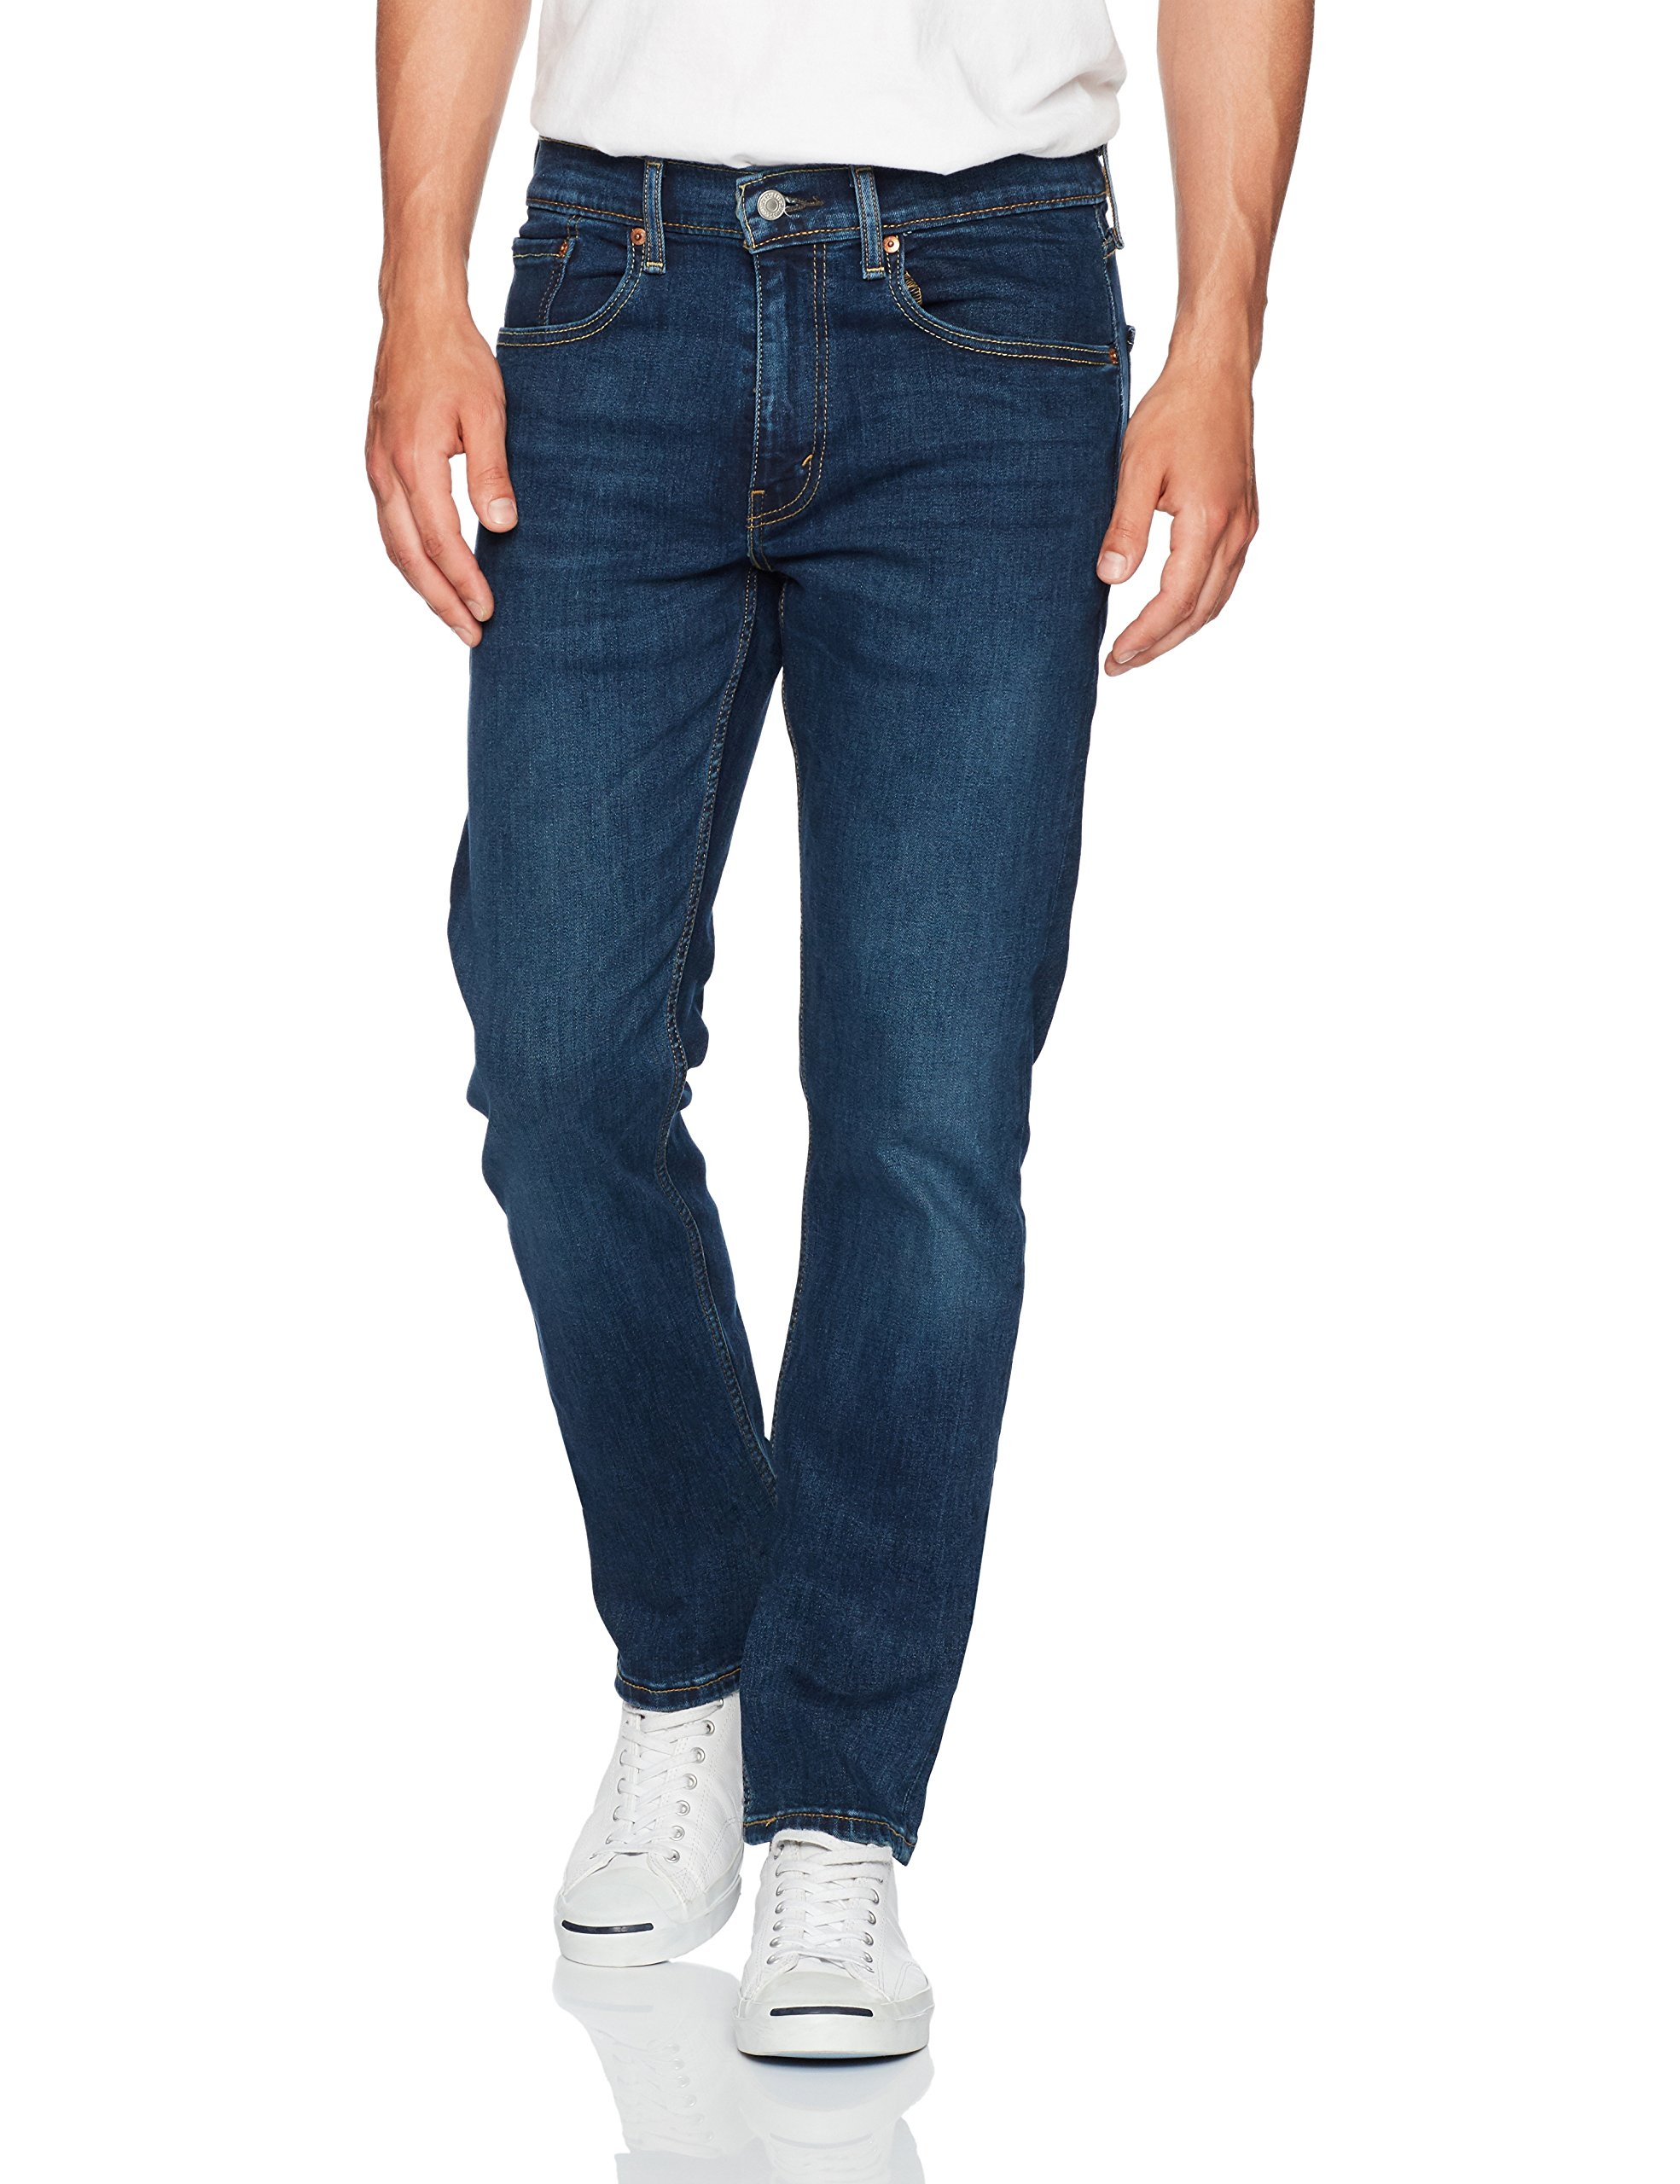 Levi's Men's 502 Regular Taper Jean, Panda-Stretch, 34 32 by Levi's